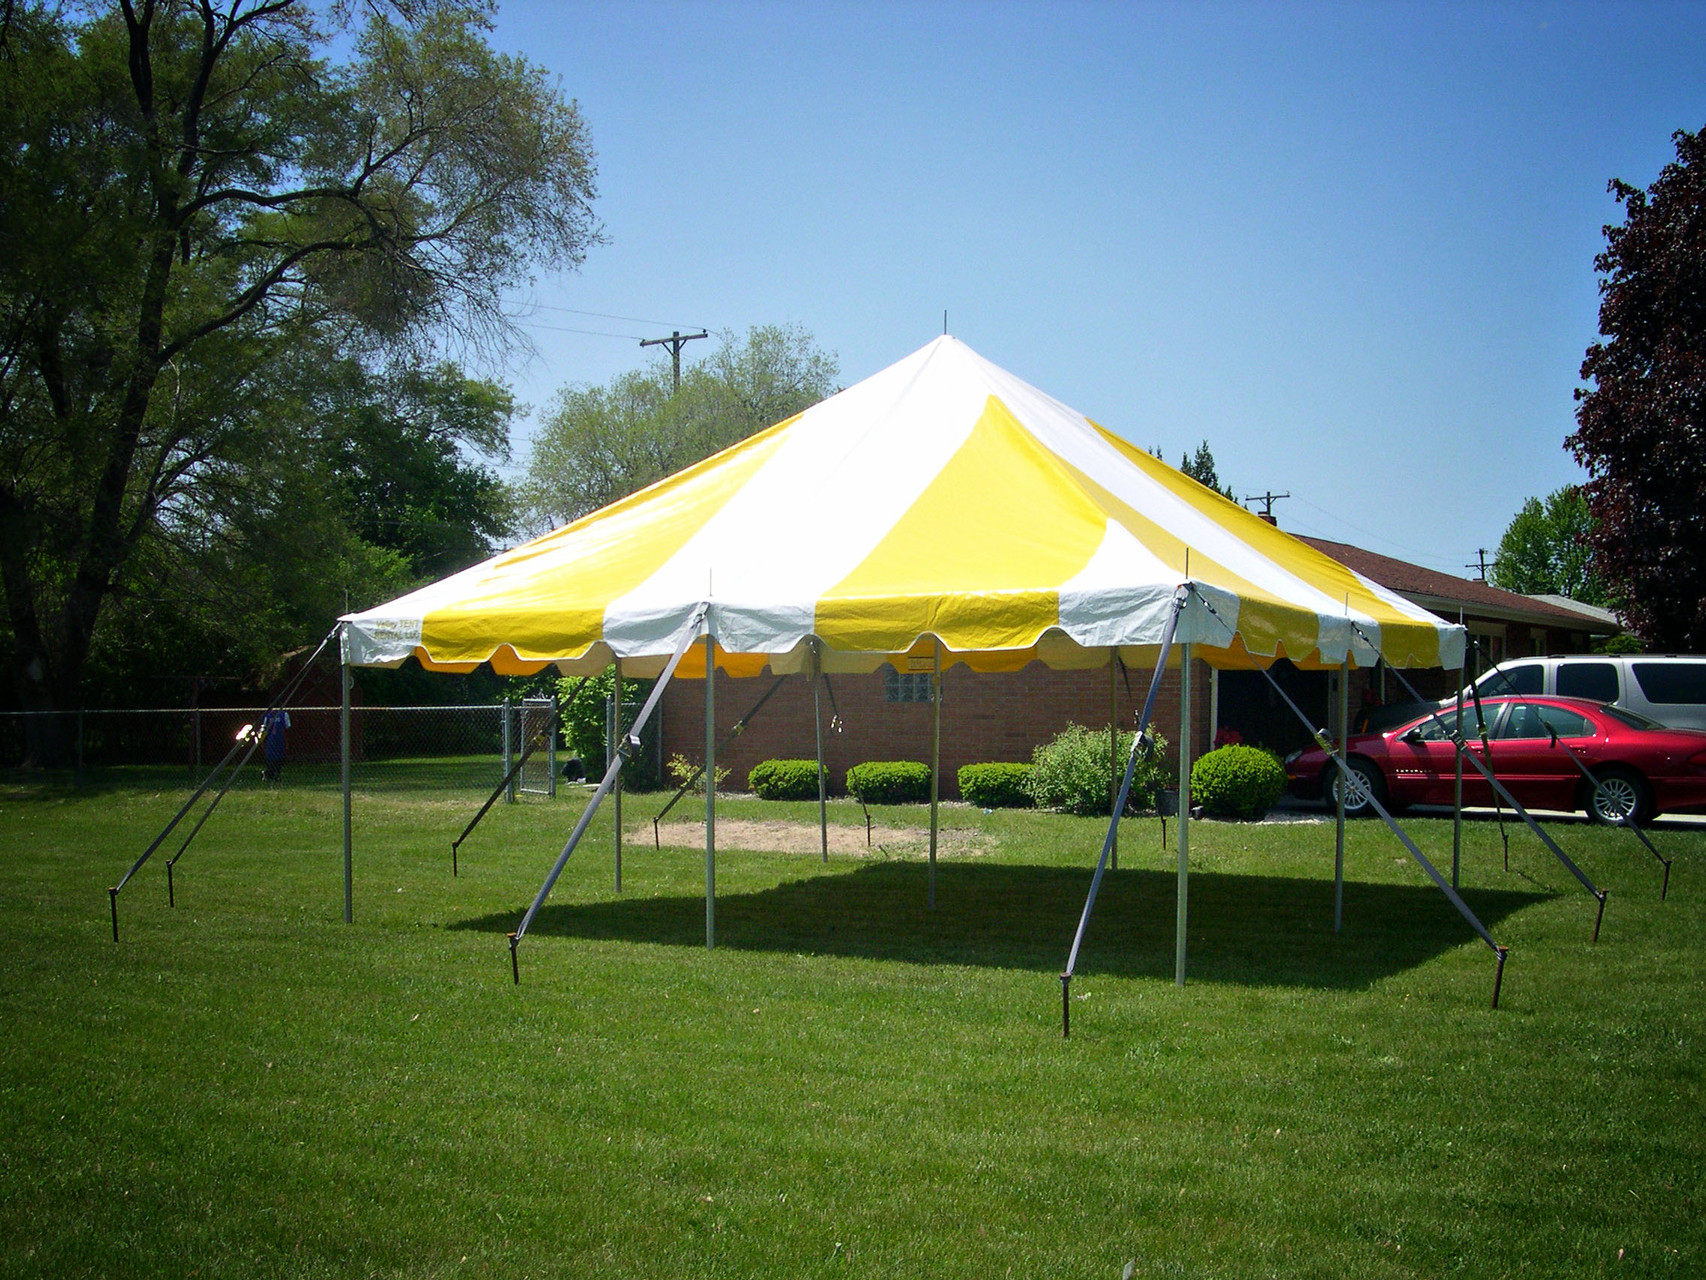 20 x 20 Pole tent can seat up to 48 people with 6 banquet tables